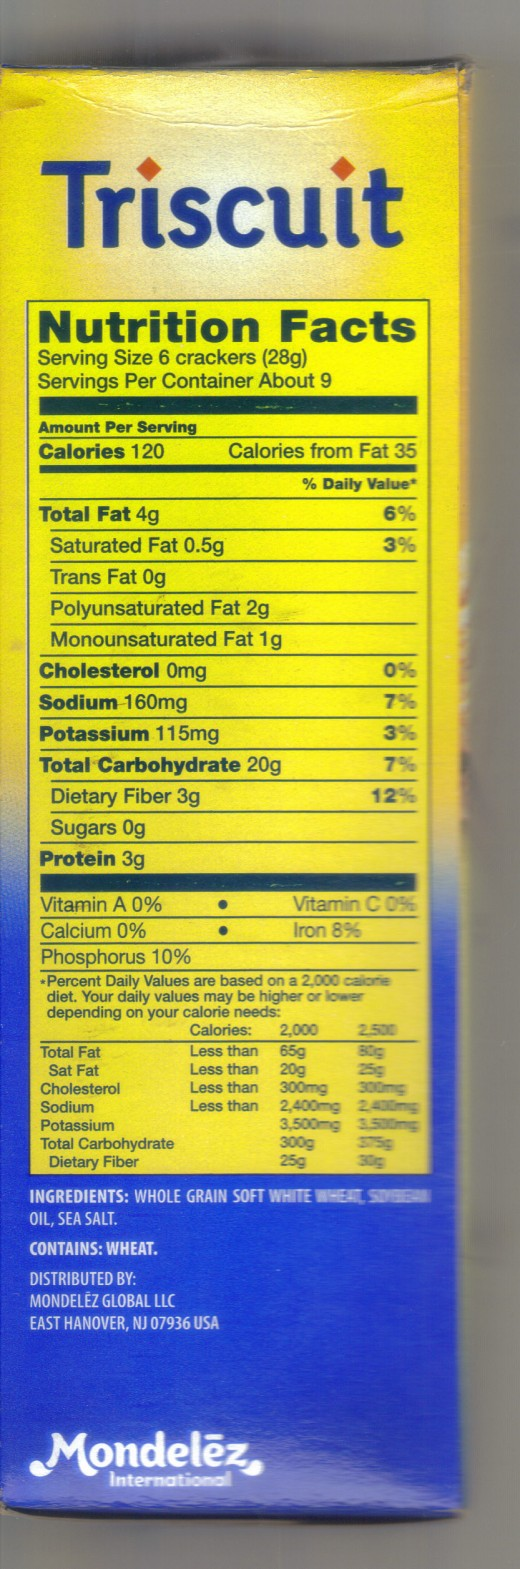 "Nutritional ""facts"""